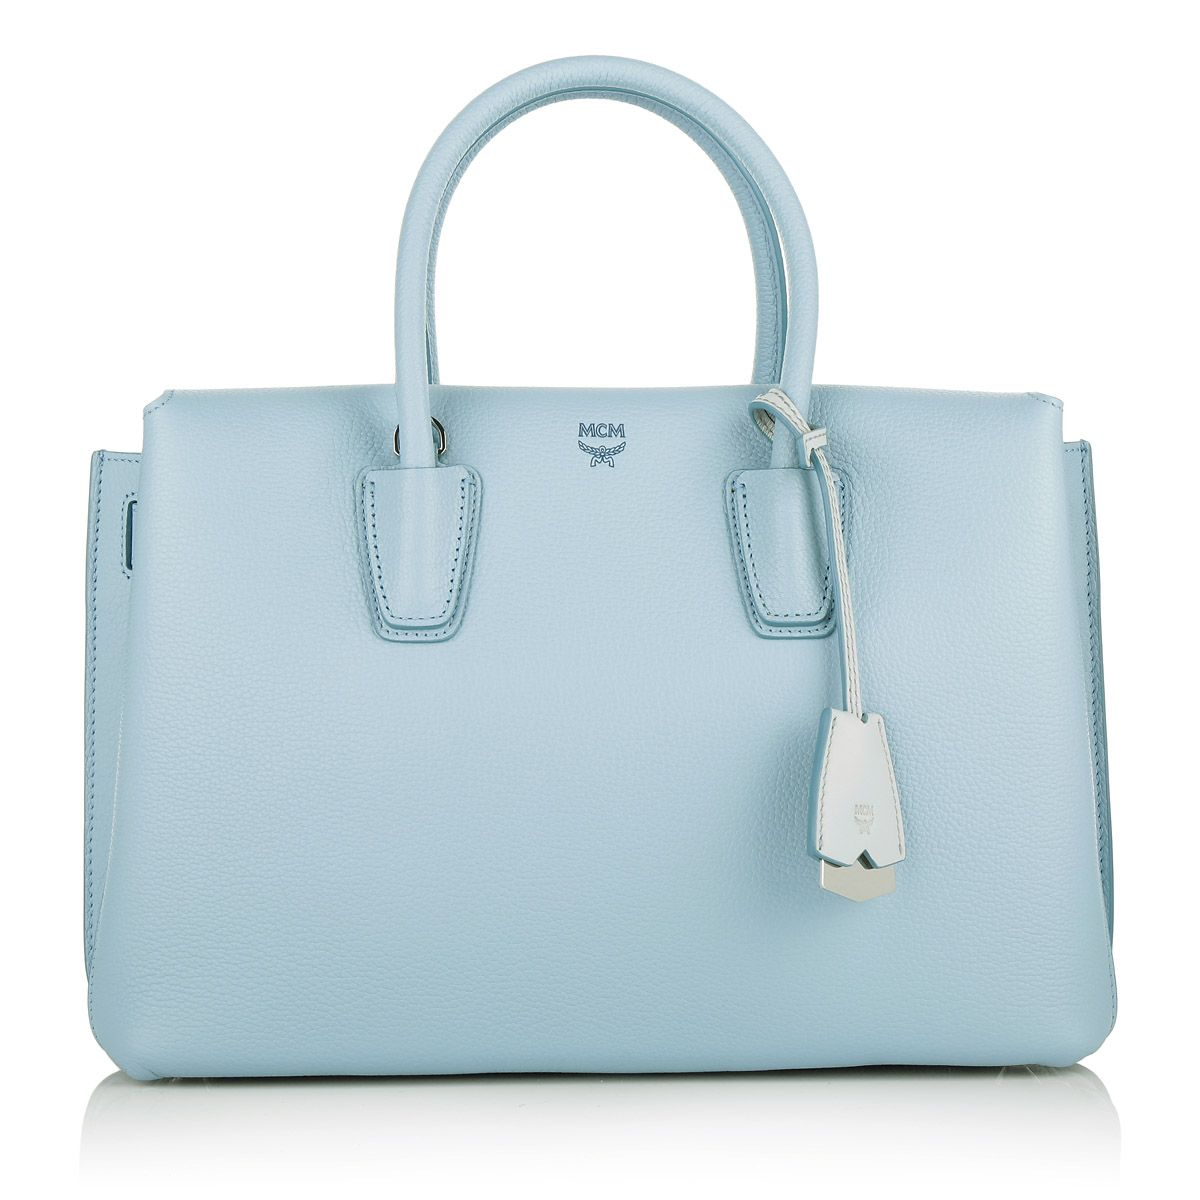 Heavenly perfect: the MCM Milla Tote Medium Sky Blue